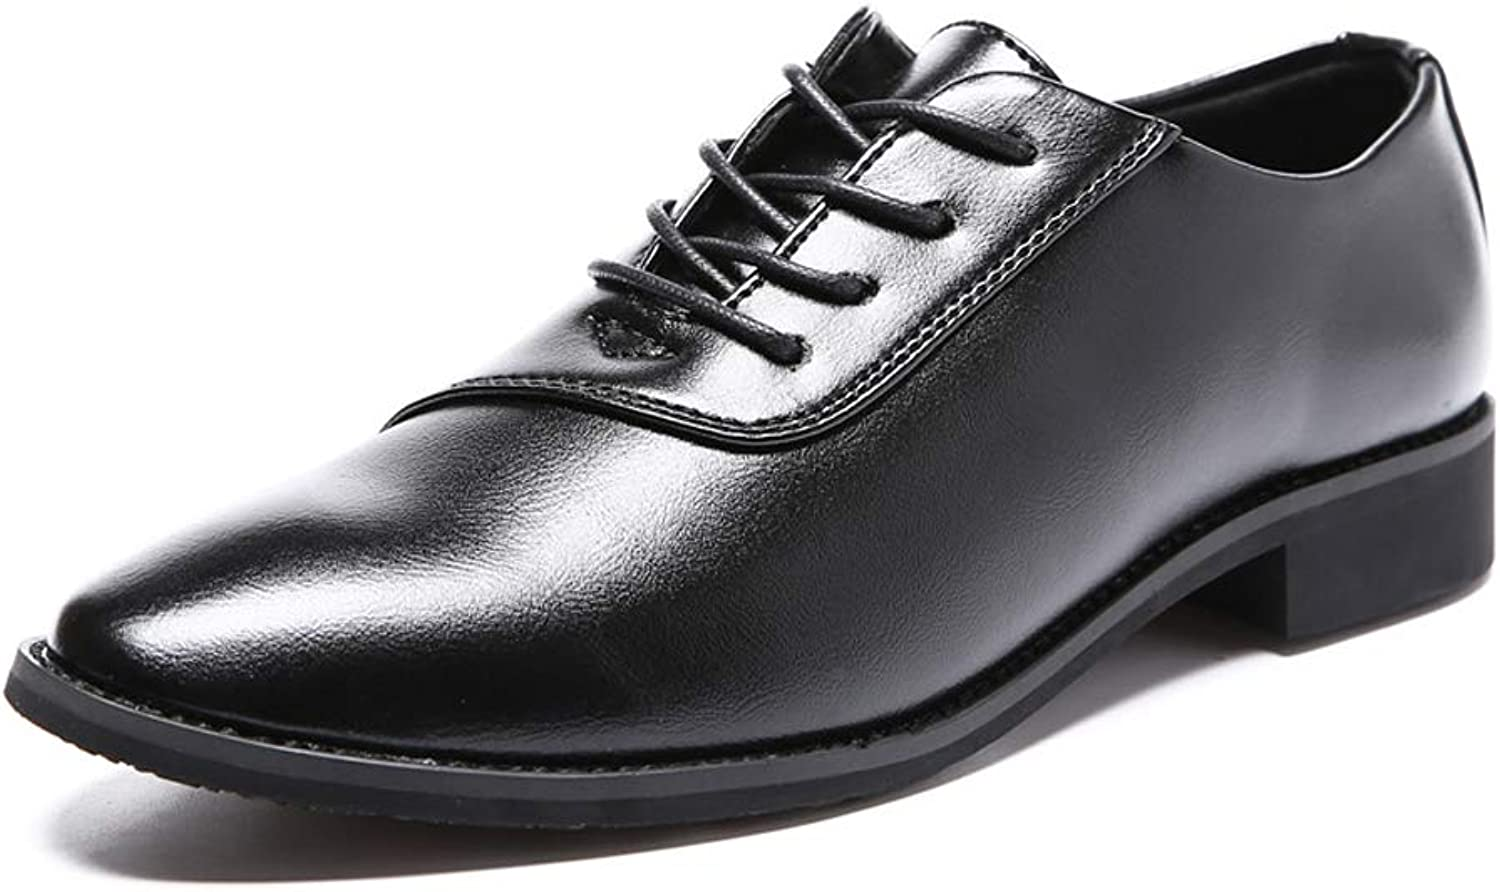 CHENDX shoes, Men's Fashion Classic Pointed Business Oxford Casual Soft Leather Lace Formal shoes (color   Black, Size   6.5 UK)